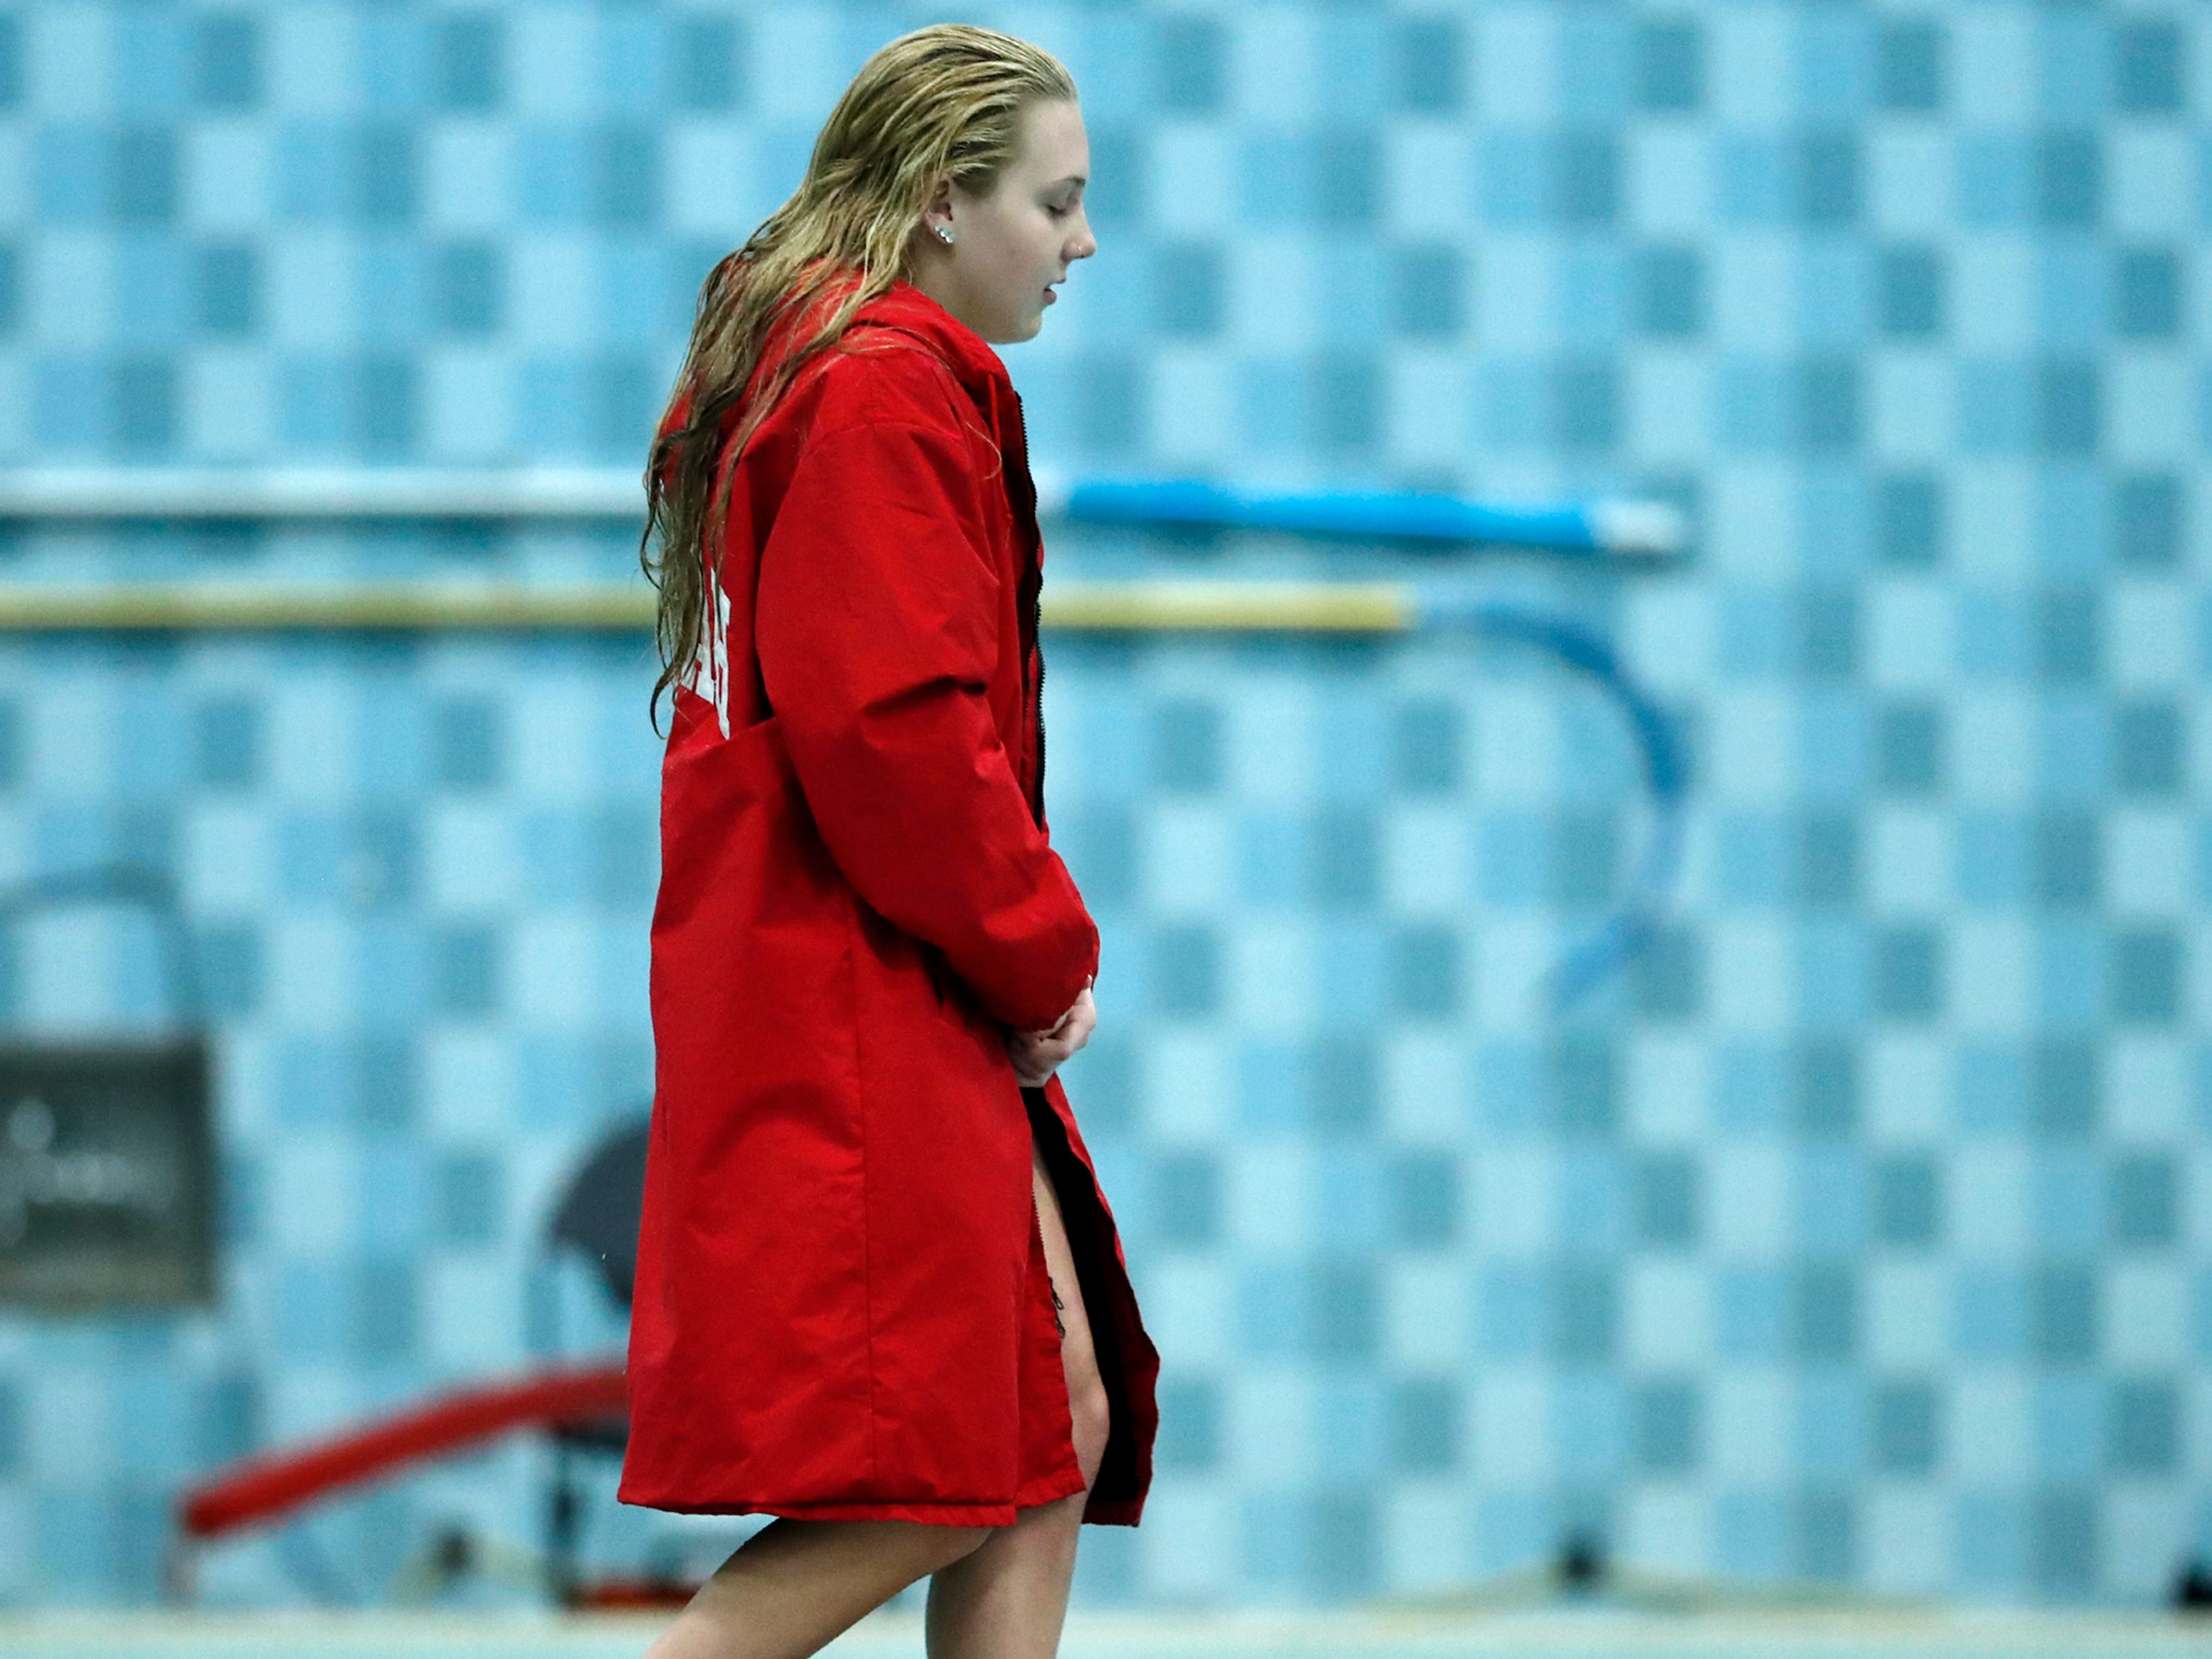 Neenah's Av Osero heads up to the first place podium before accepting her medal after finishing diving during the WIAA Division 1 State Swimming and Diving meet Saturday, Nov. 10, 2018, at the UW Natatorium in Madison, Wis.